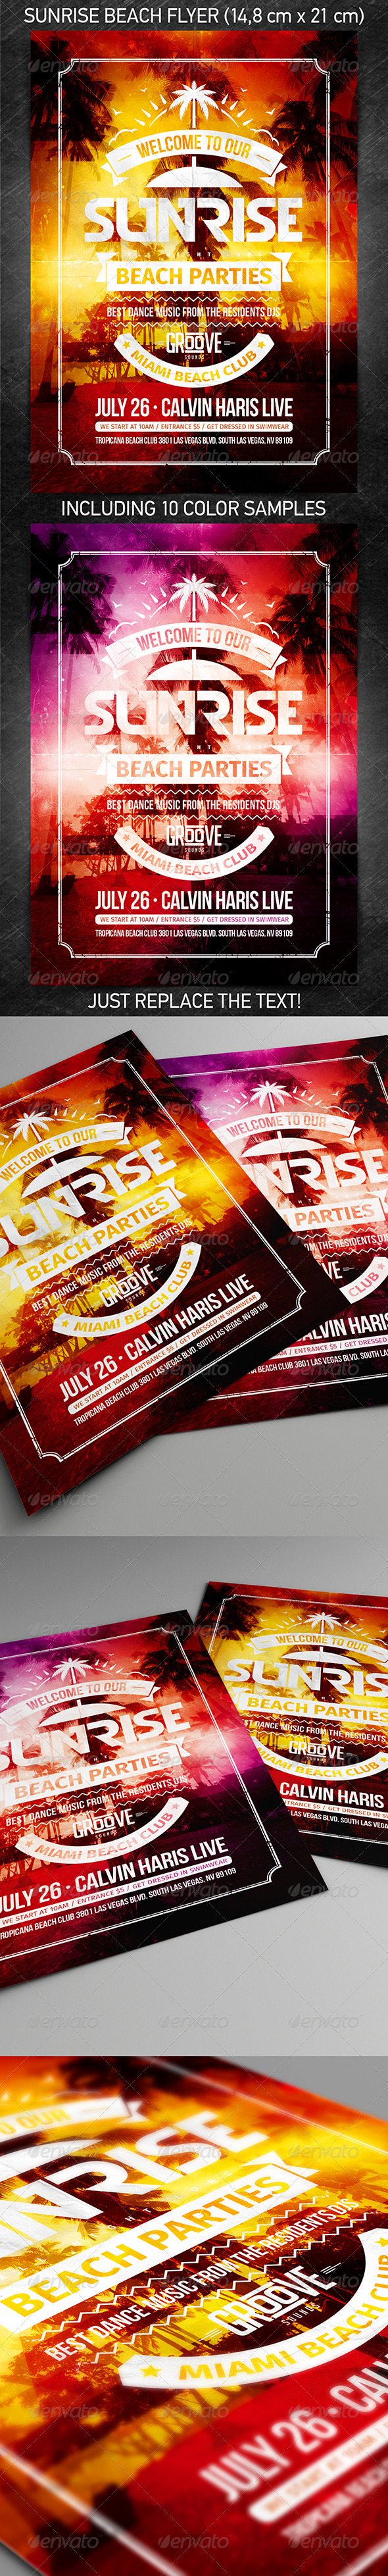 Sunrise Beach Party Flyer - Events Flyers